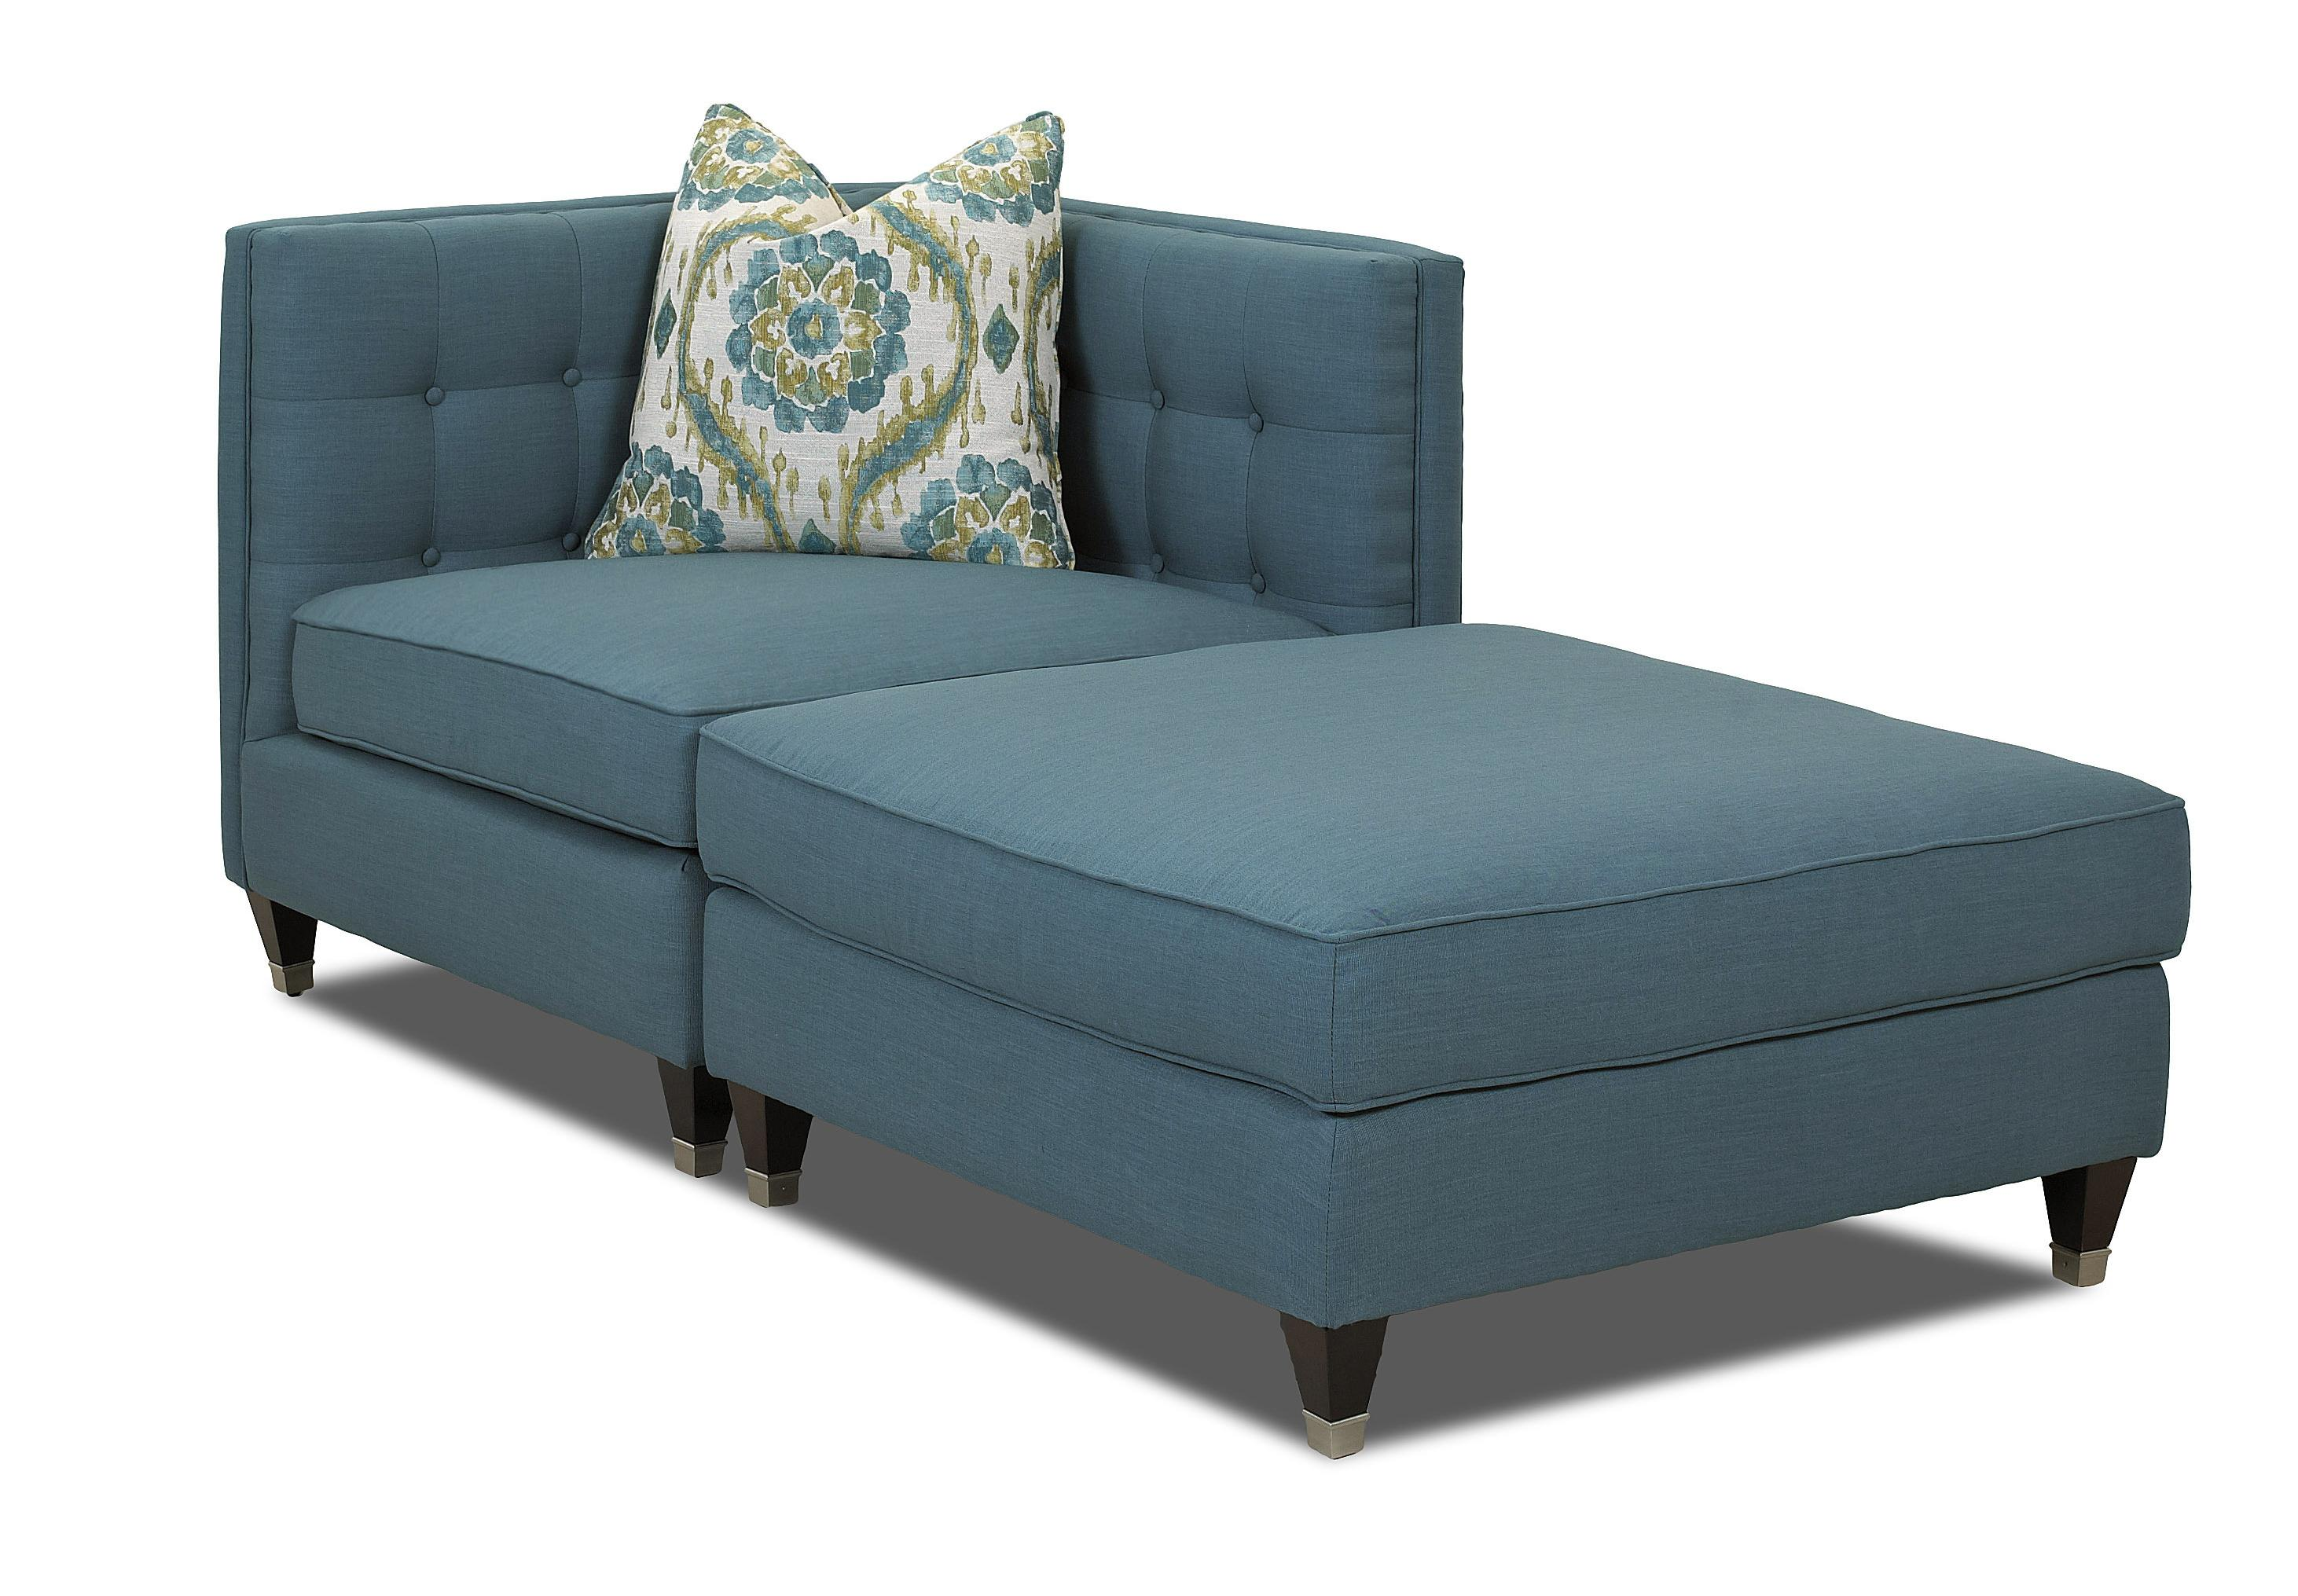 Klaussner Celeste Two Piece Sectional Sofa - Item Number: D73800 CORN+OTTO